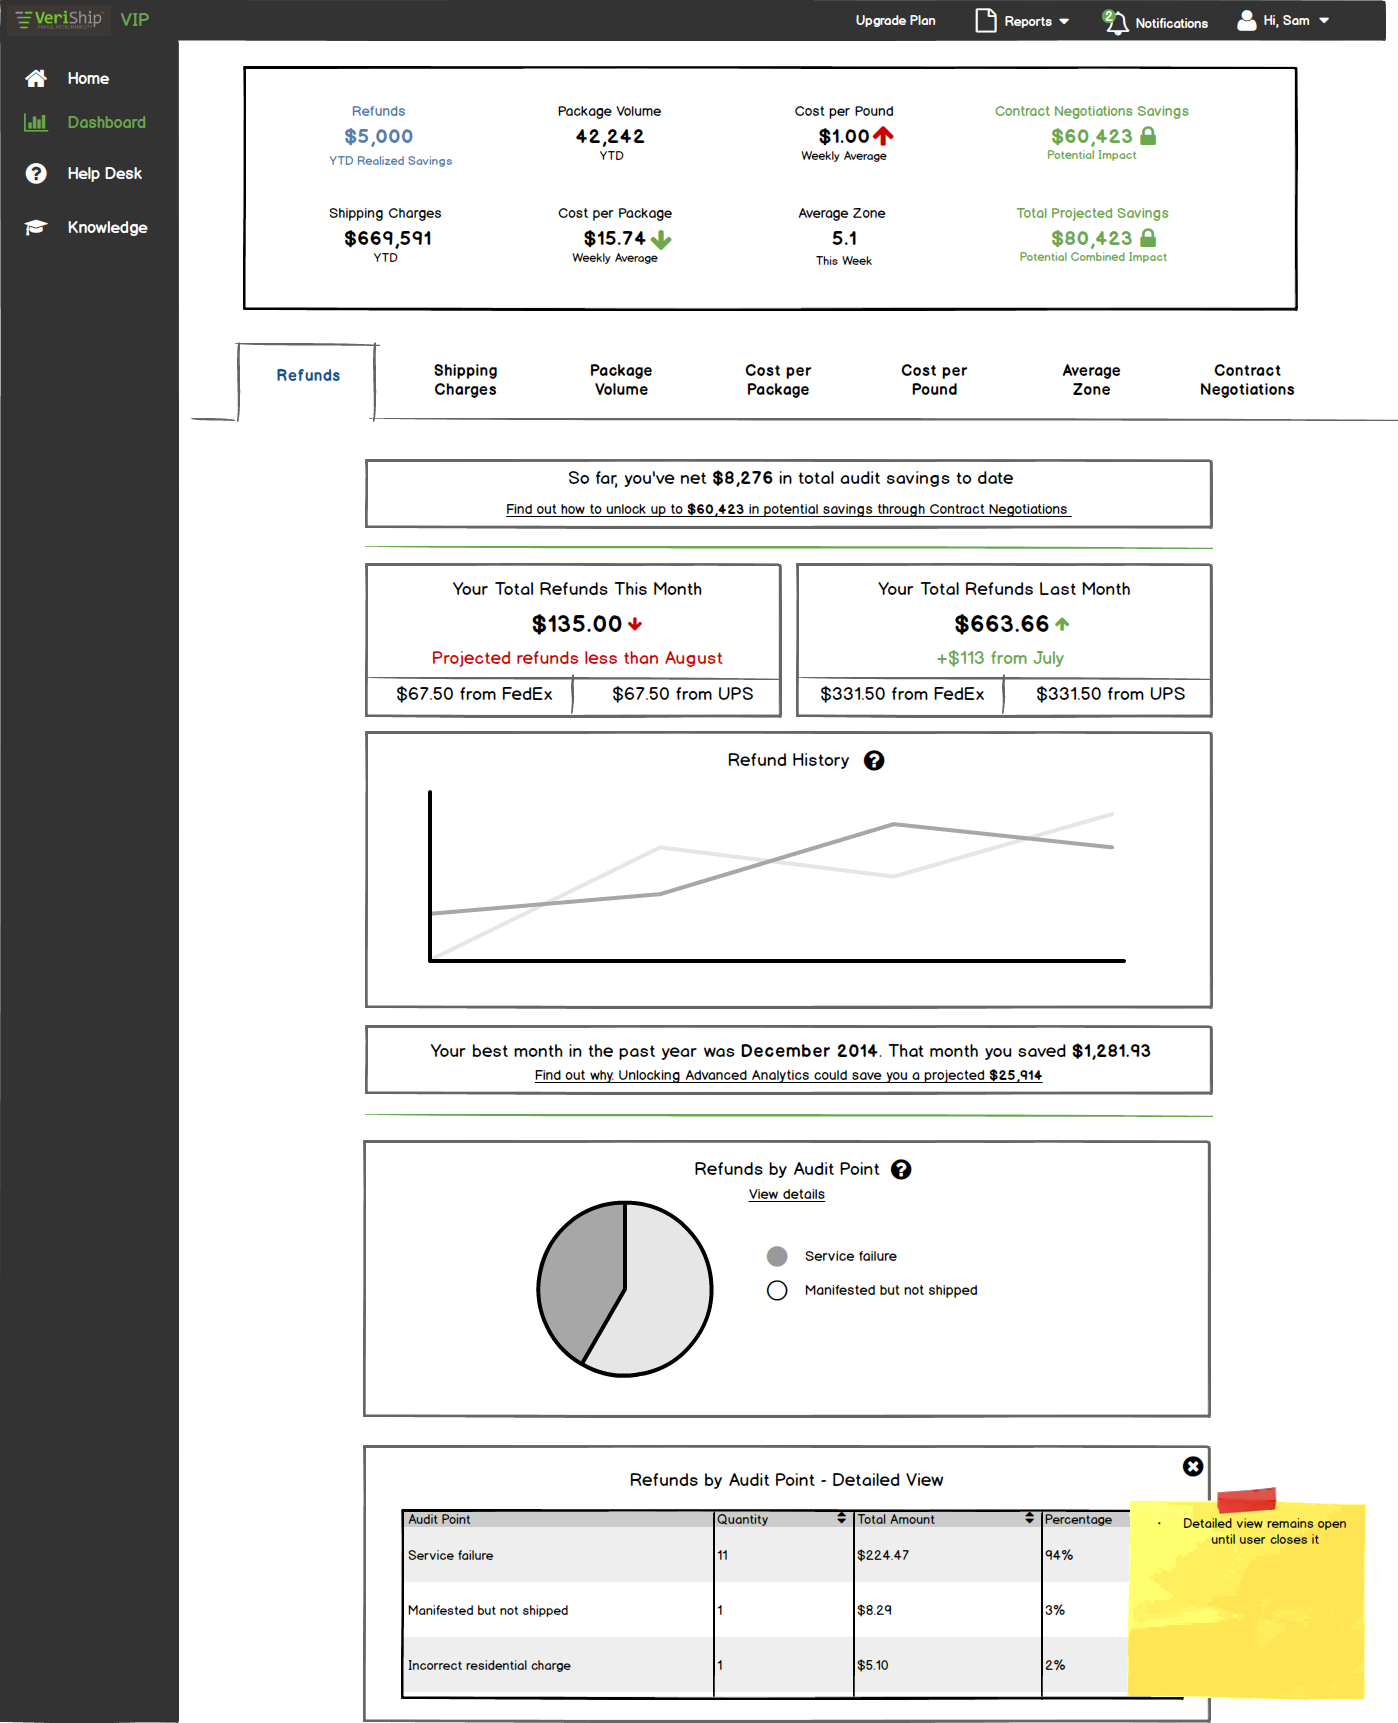 Analytics Dashboard Early Wireframe 1